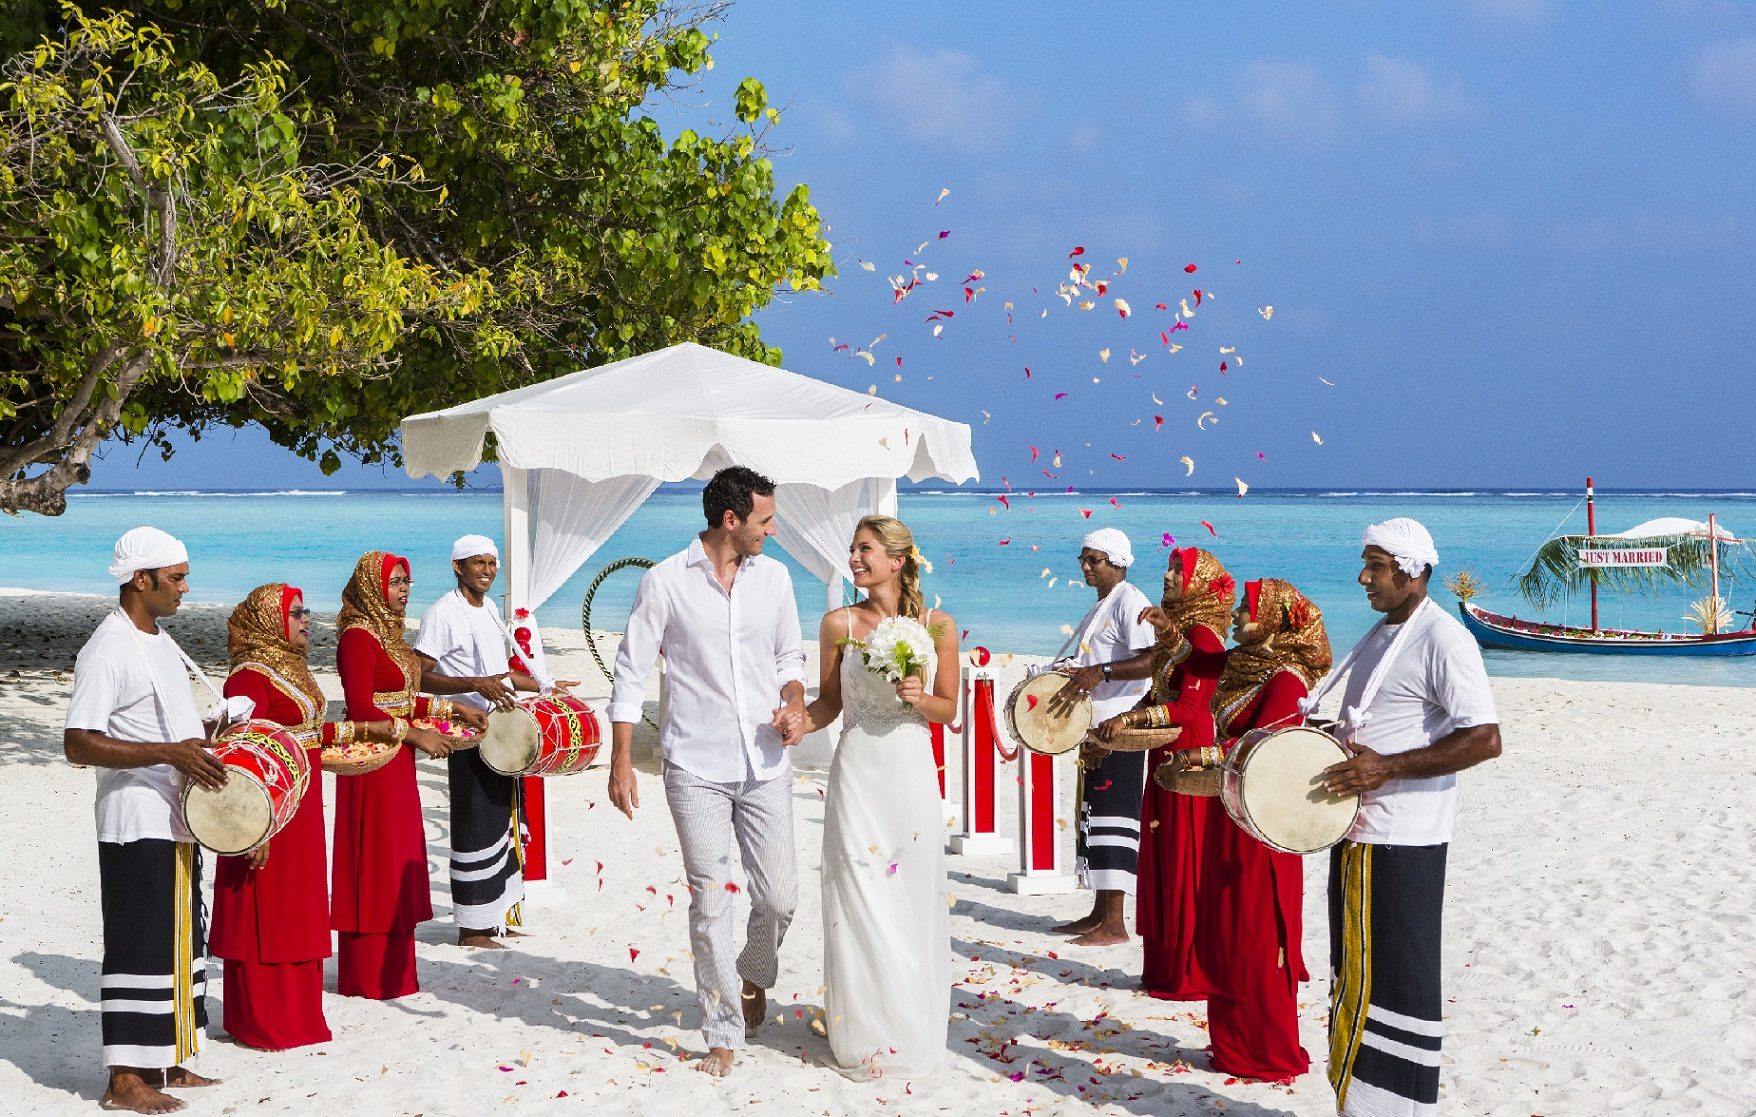 Maldives finally voted as the number one honeymoon for Number one travel destination